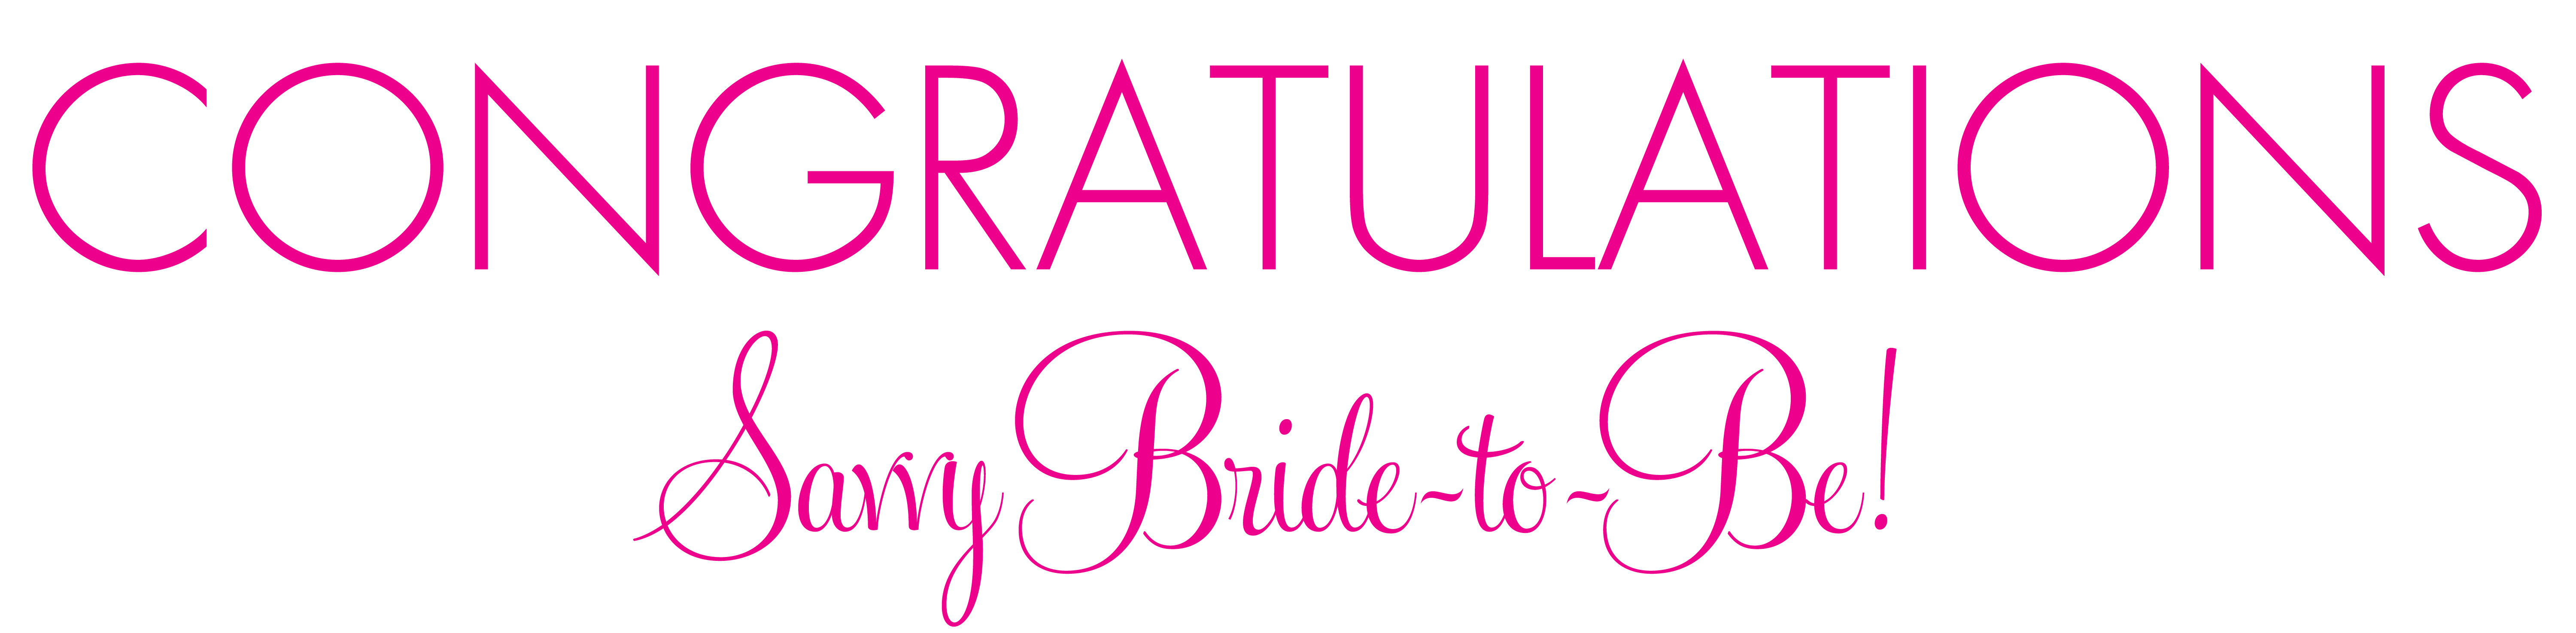 Wedding congratulations png. Planner wishing well template